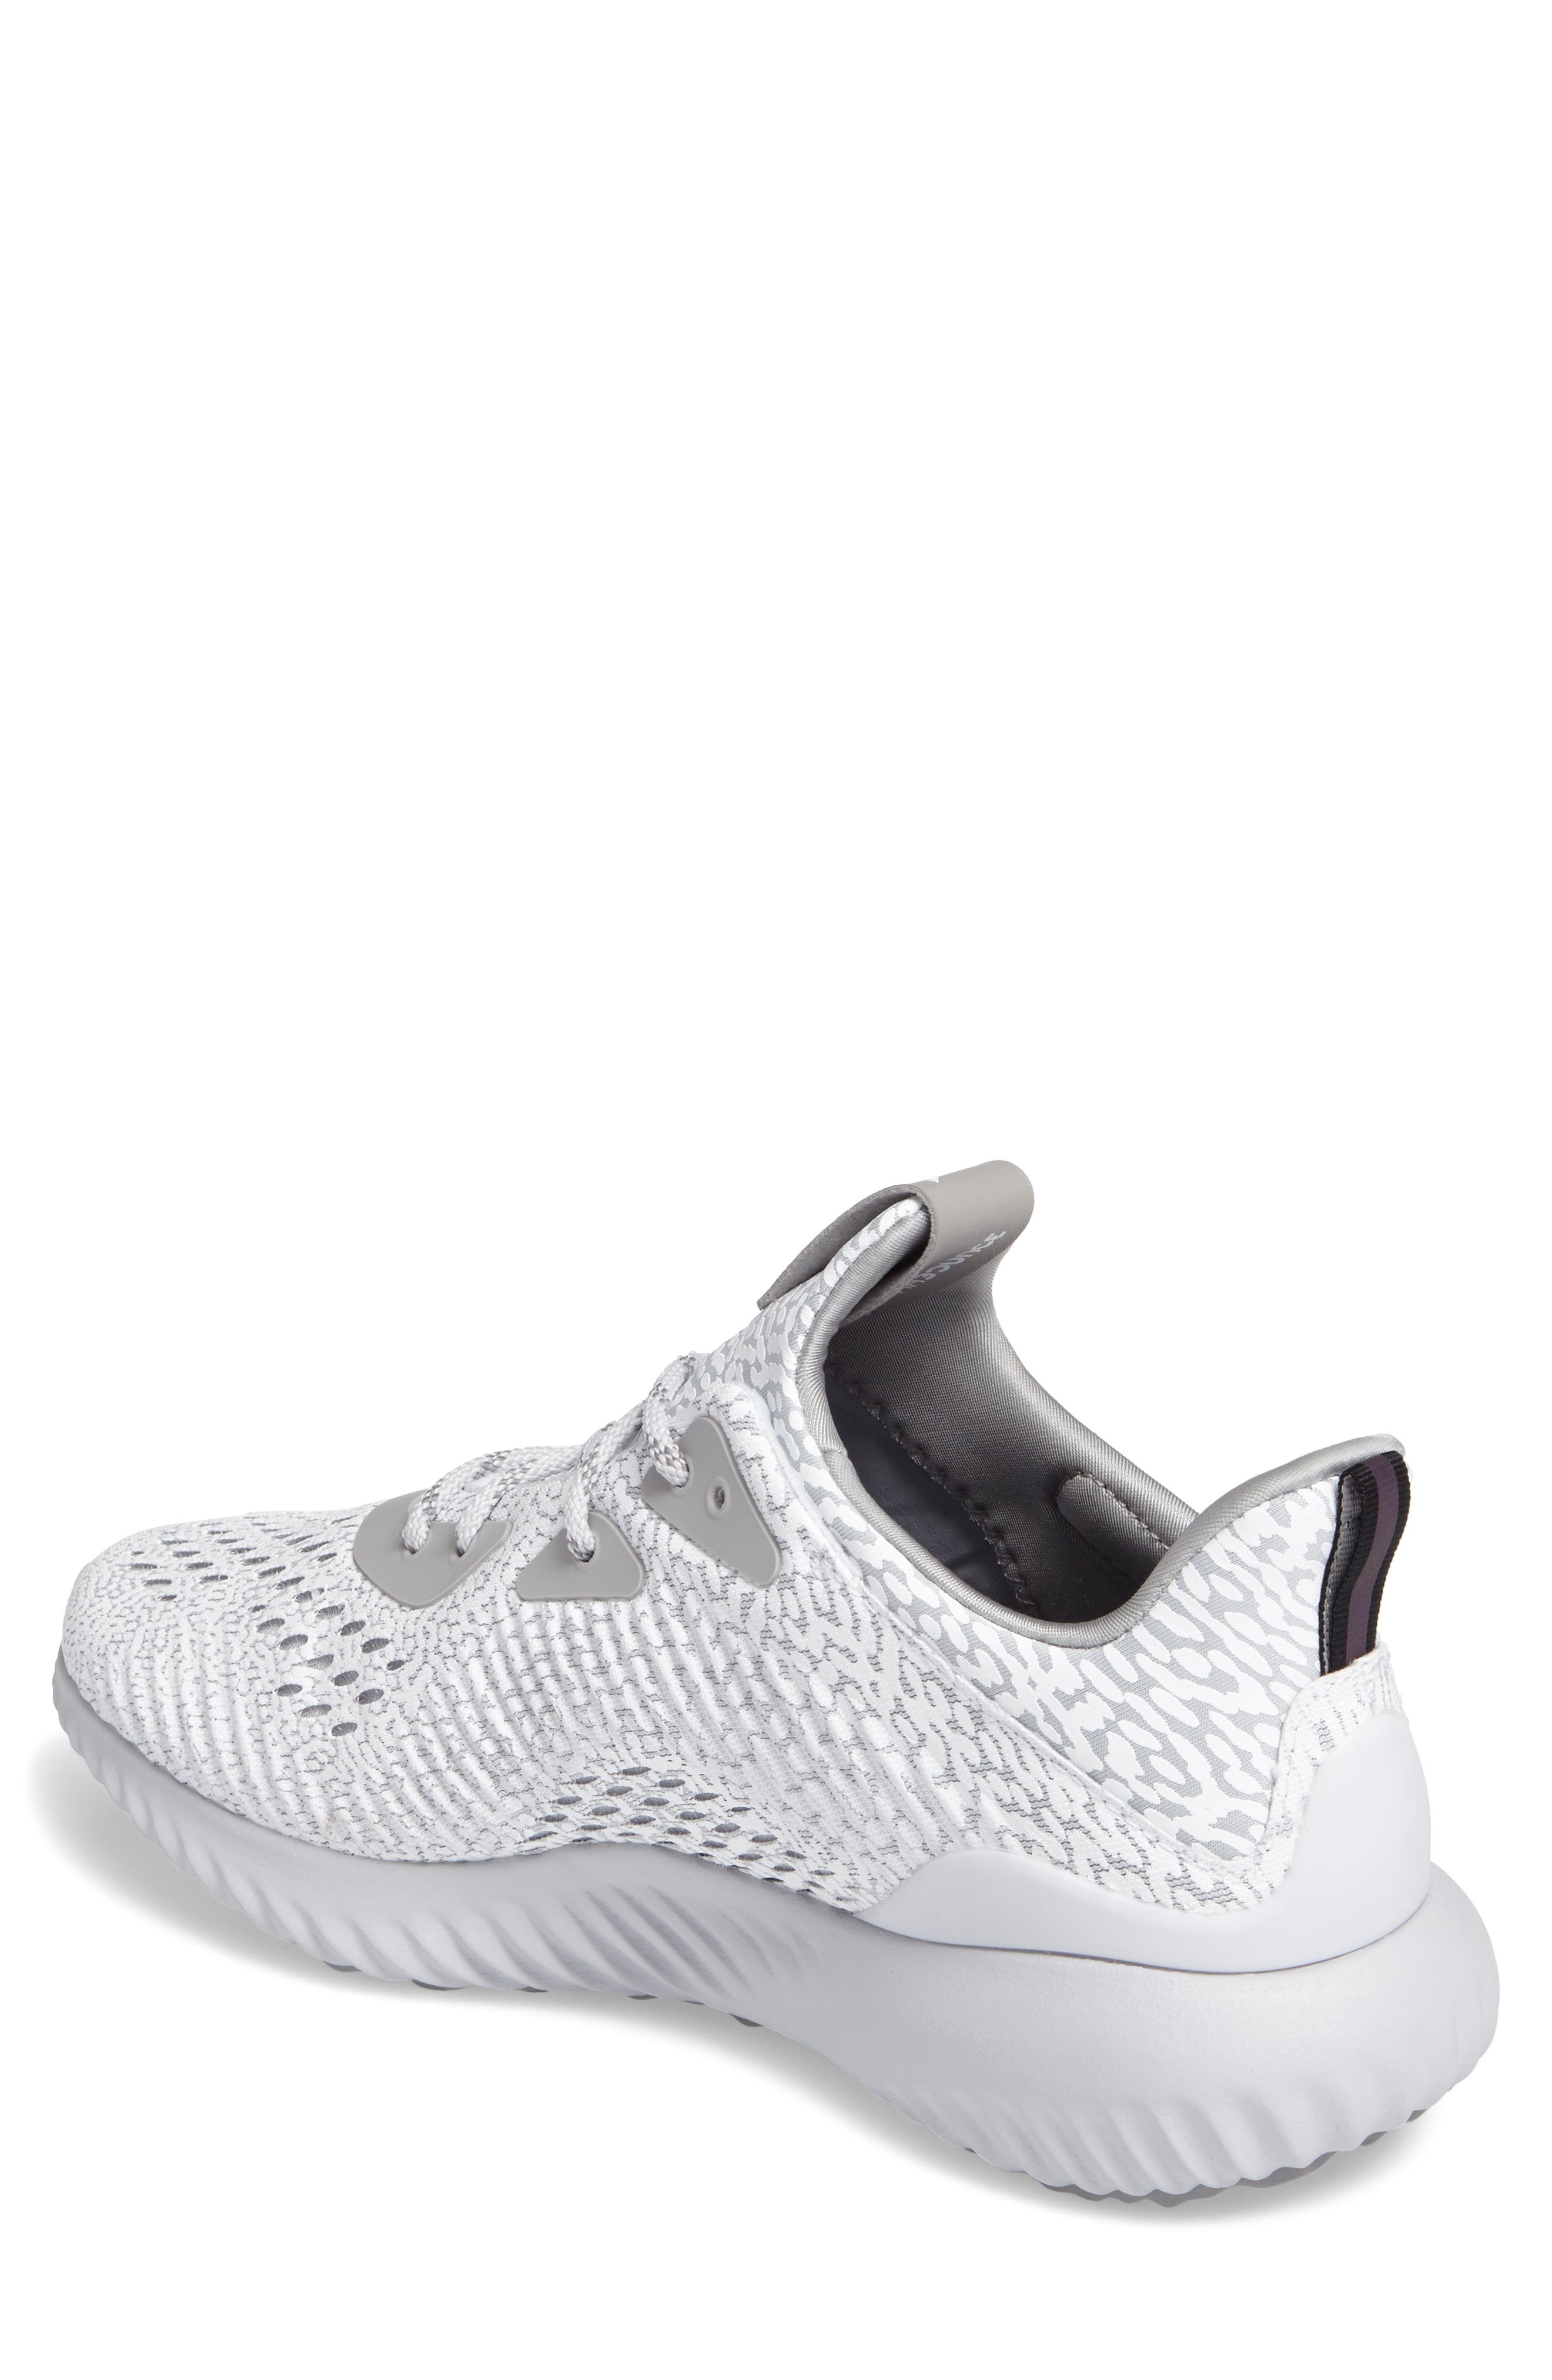 AlphaBounce Aramis Sneaker,                             Alternate thumbnail 2, color,                             Clear Grey/Core Black